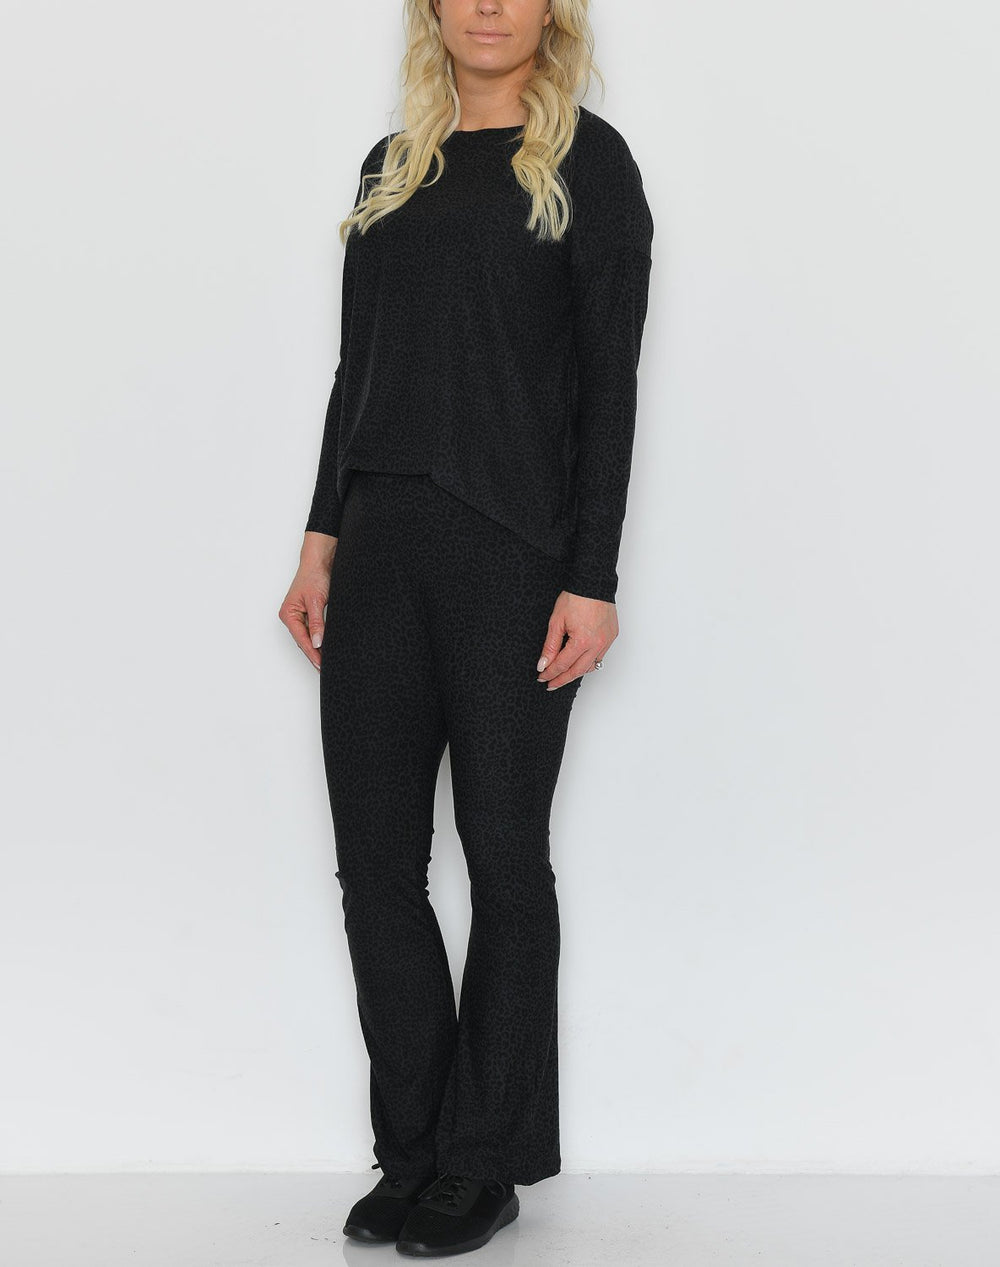 Liberté Alma flaired pants leo/black - Online-Mode